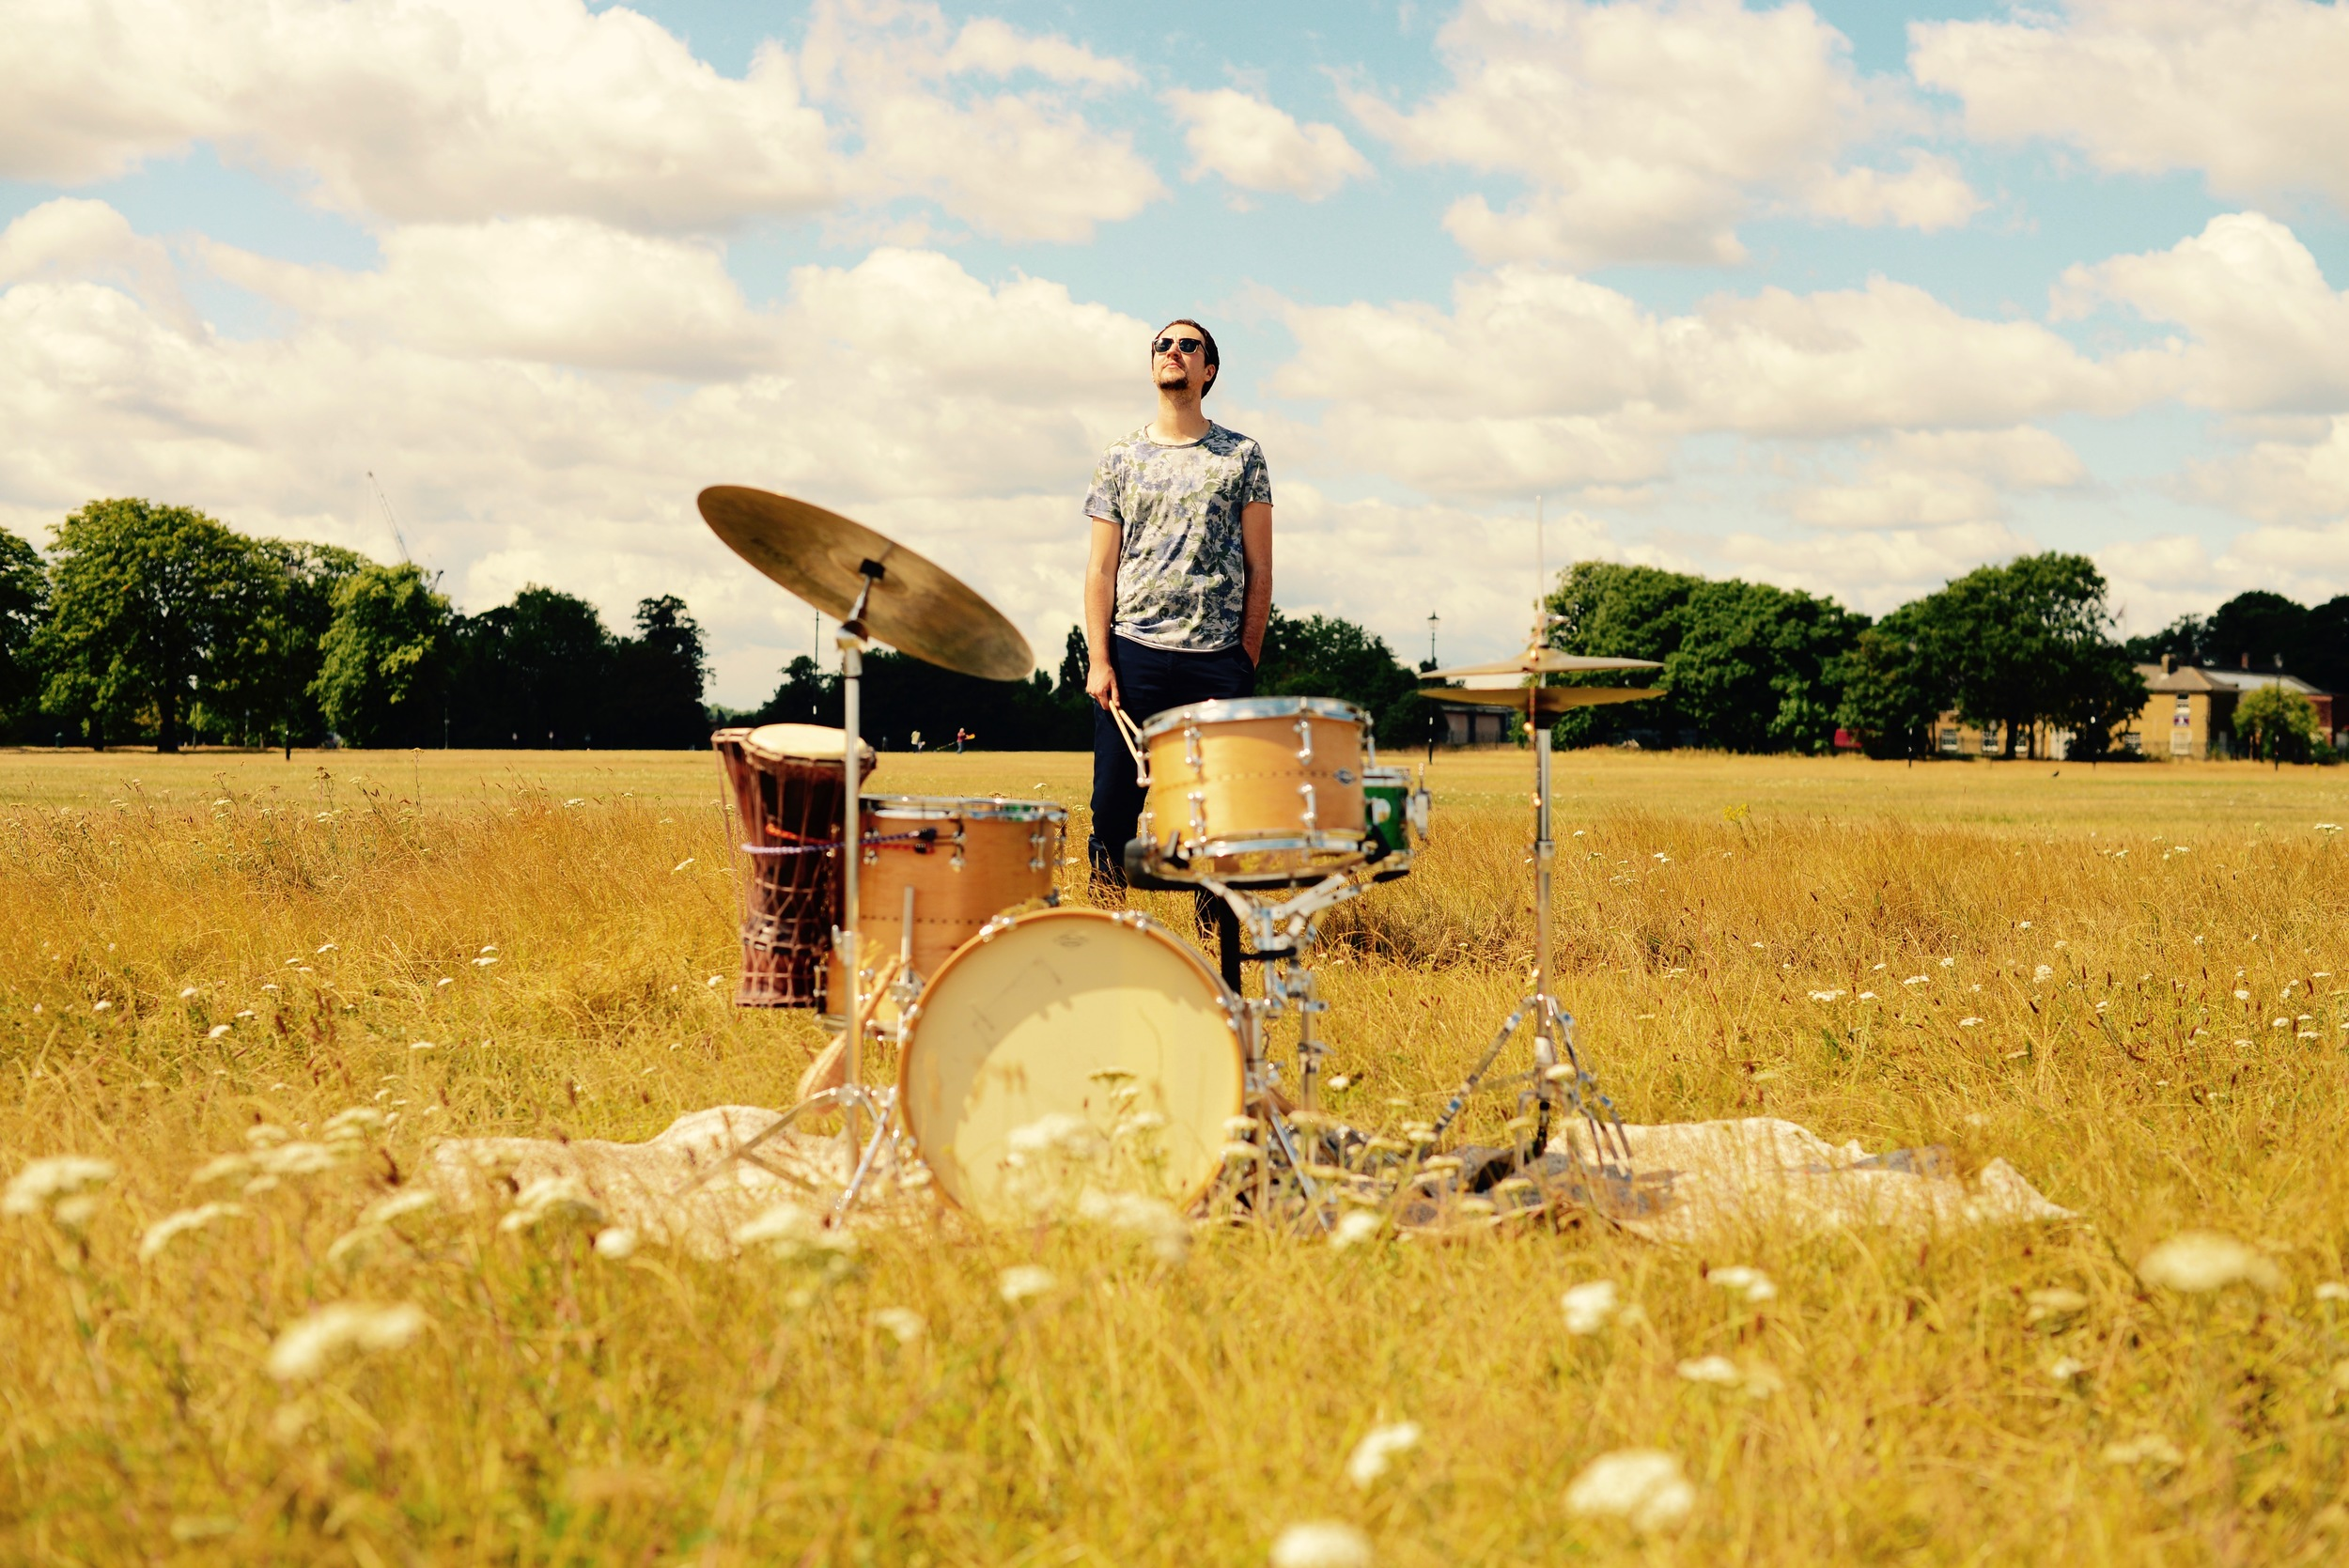 Promo shot for  Composer, bandleader and award winning musician C orrie Dick http://www.corriedick.com/